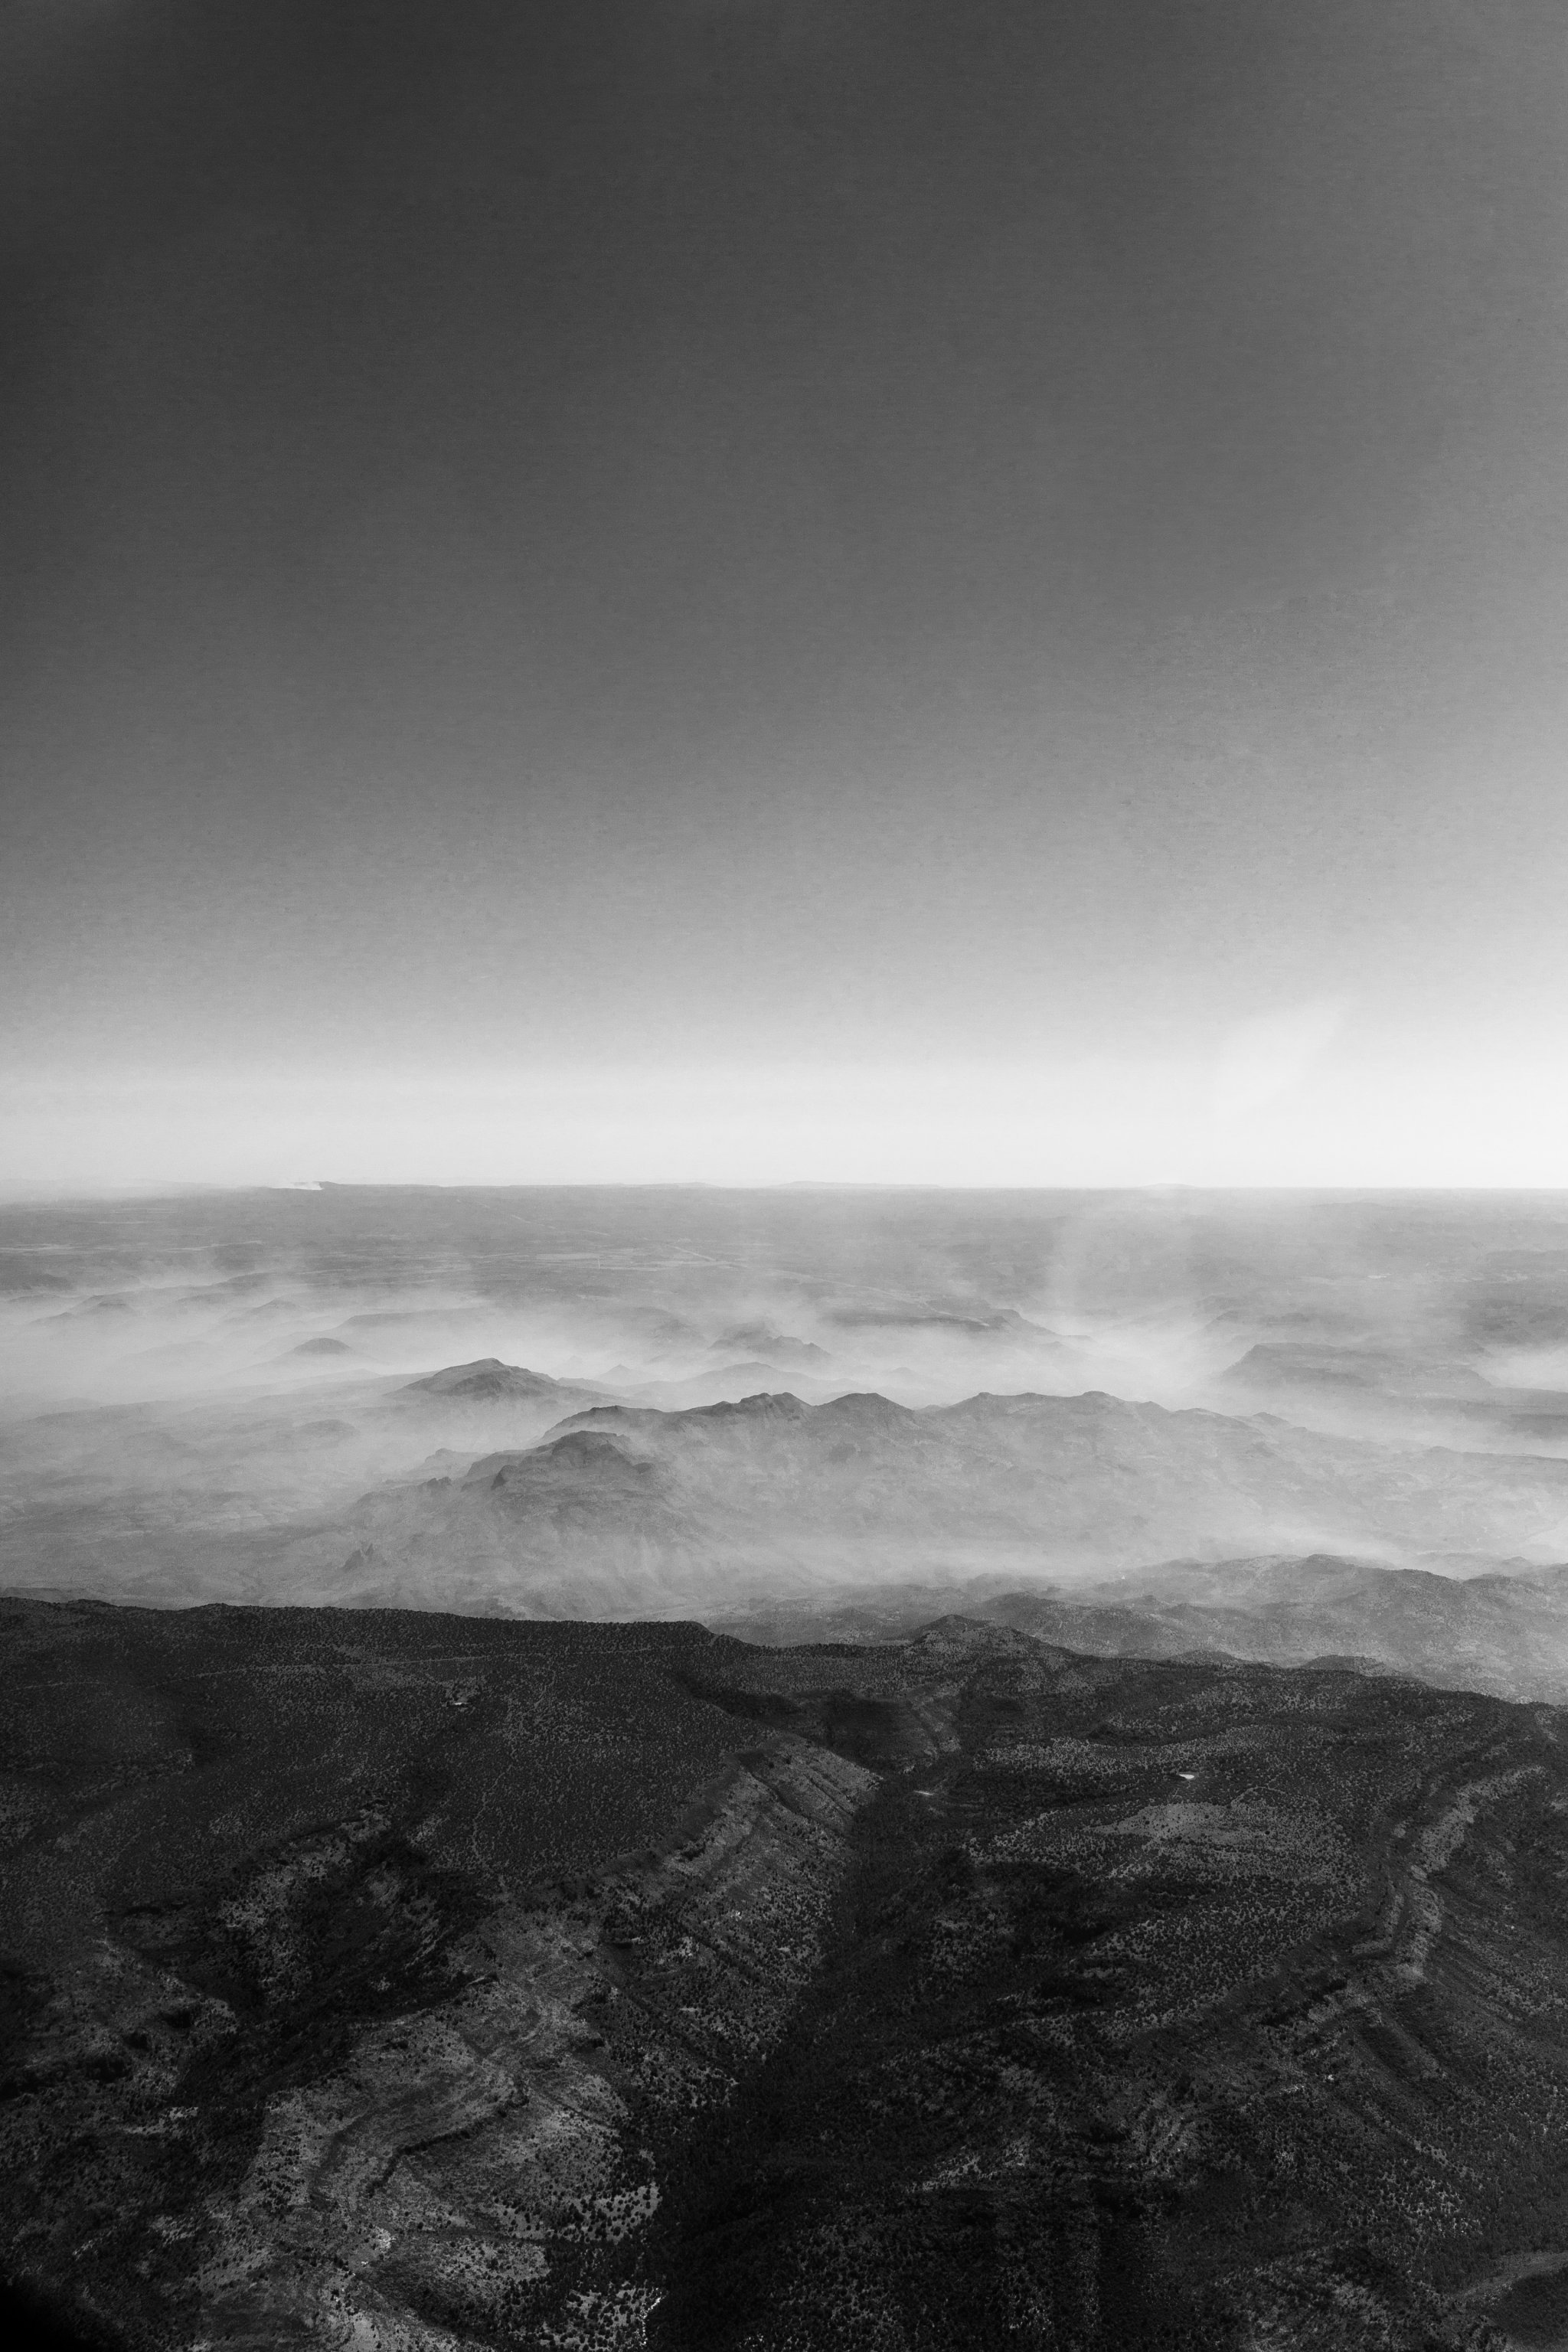 black and white photo of hazy Arizona mountains from a plane